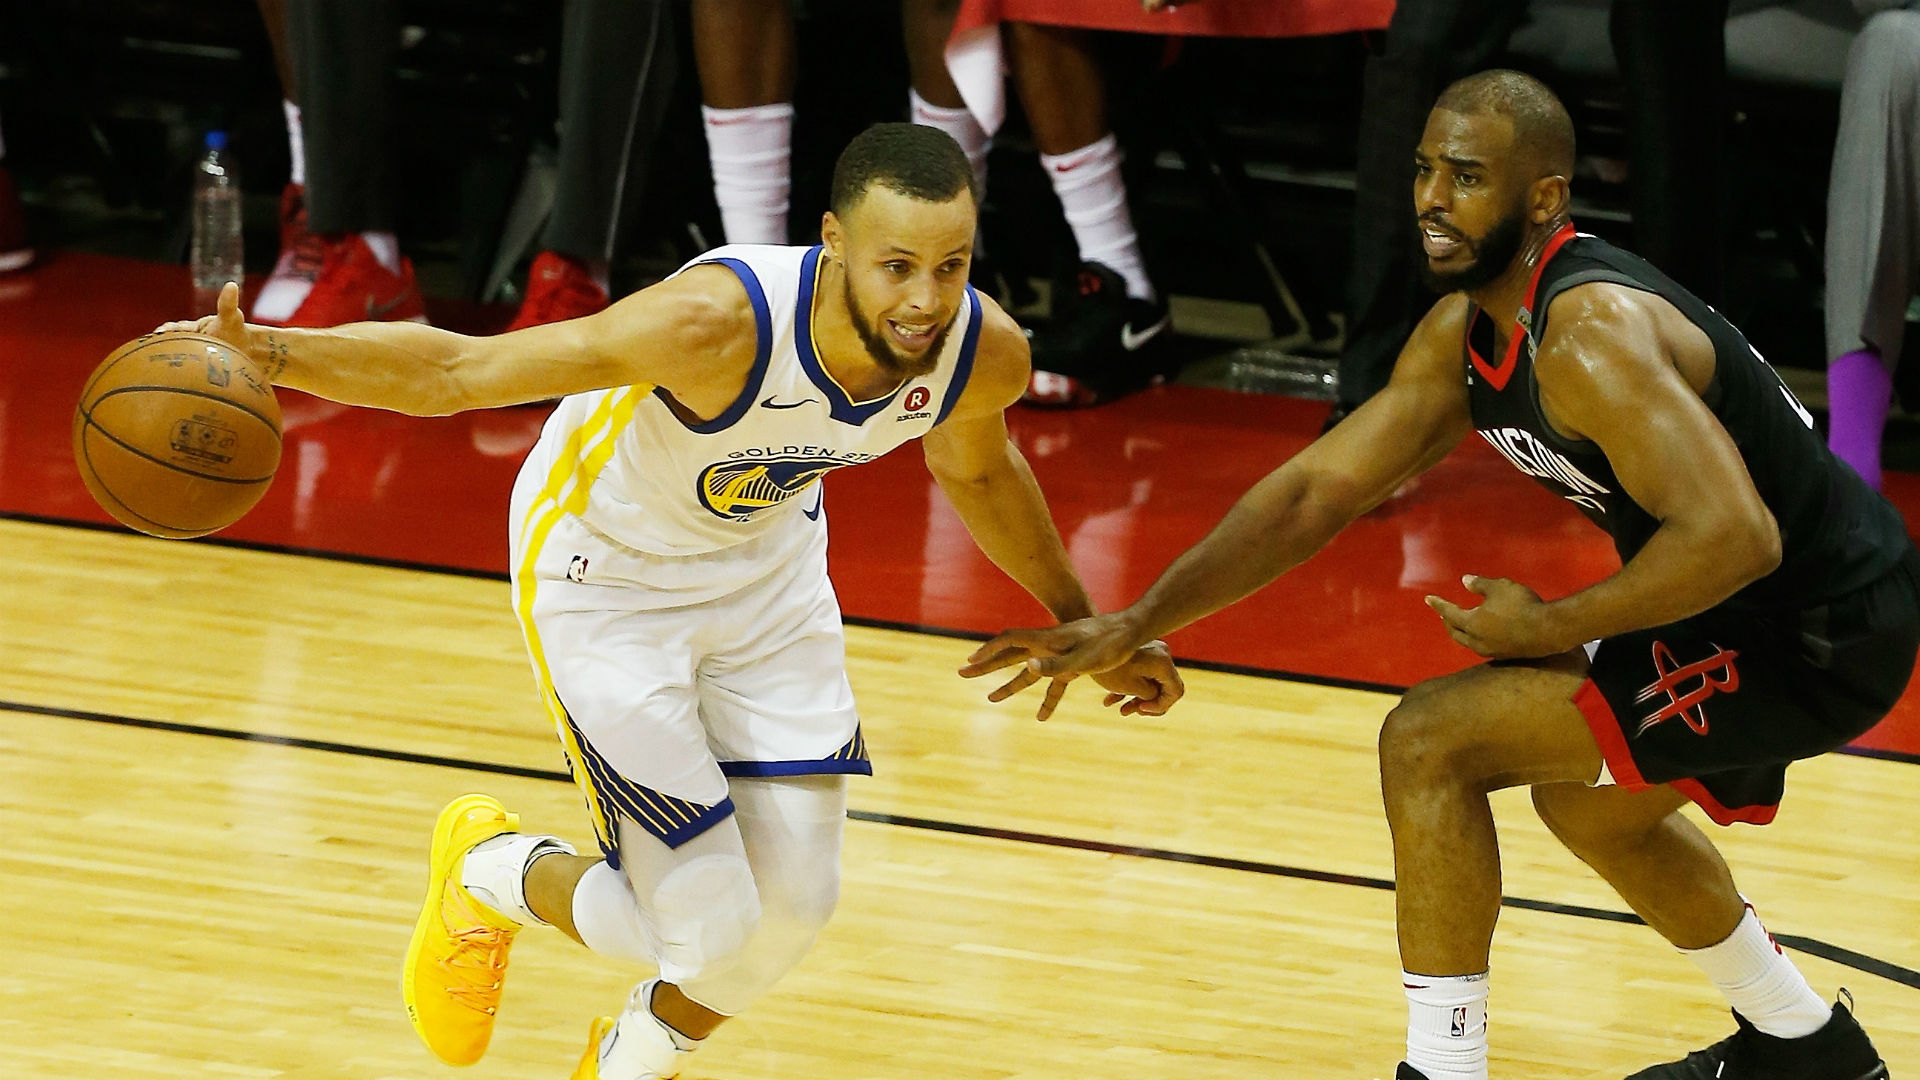 Rockets guard ruled out for Game 6 against Warriors